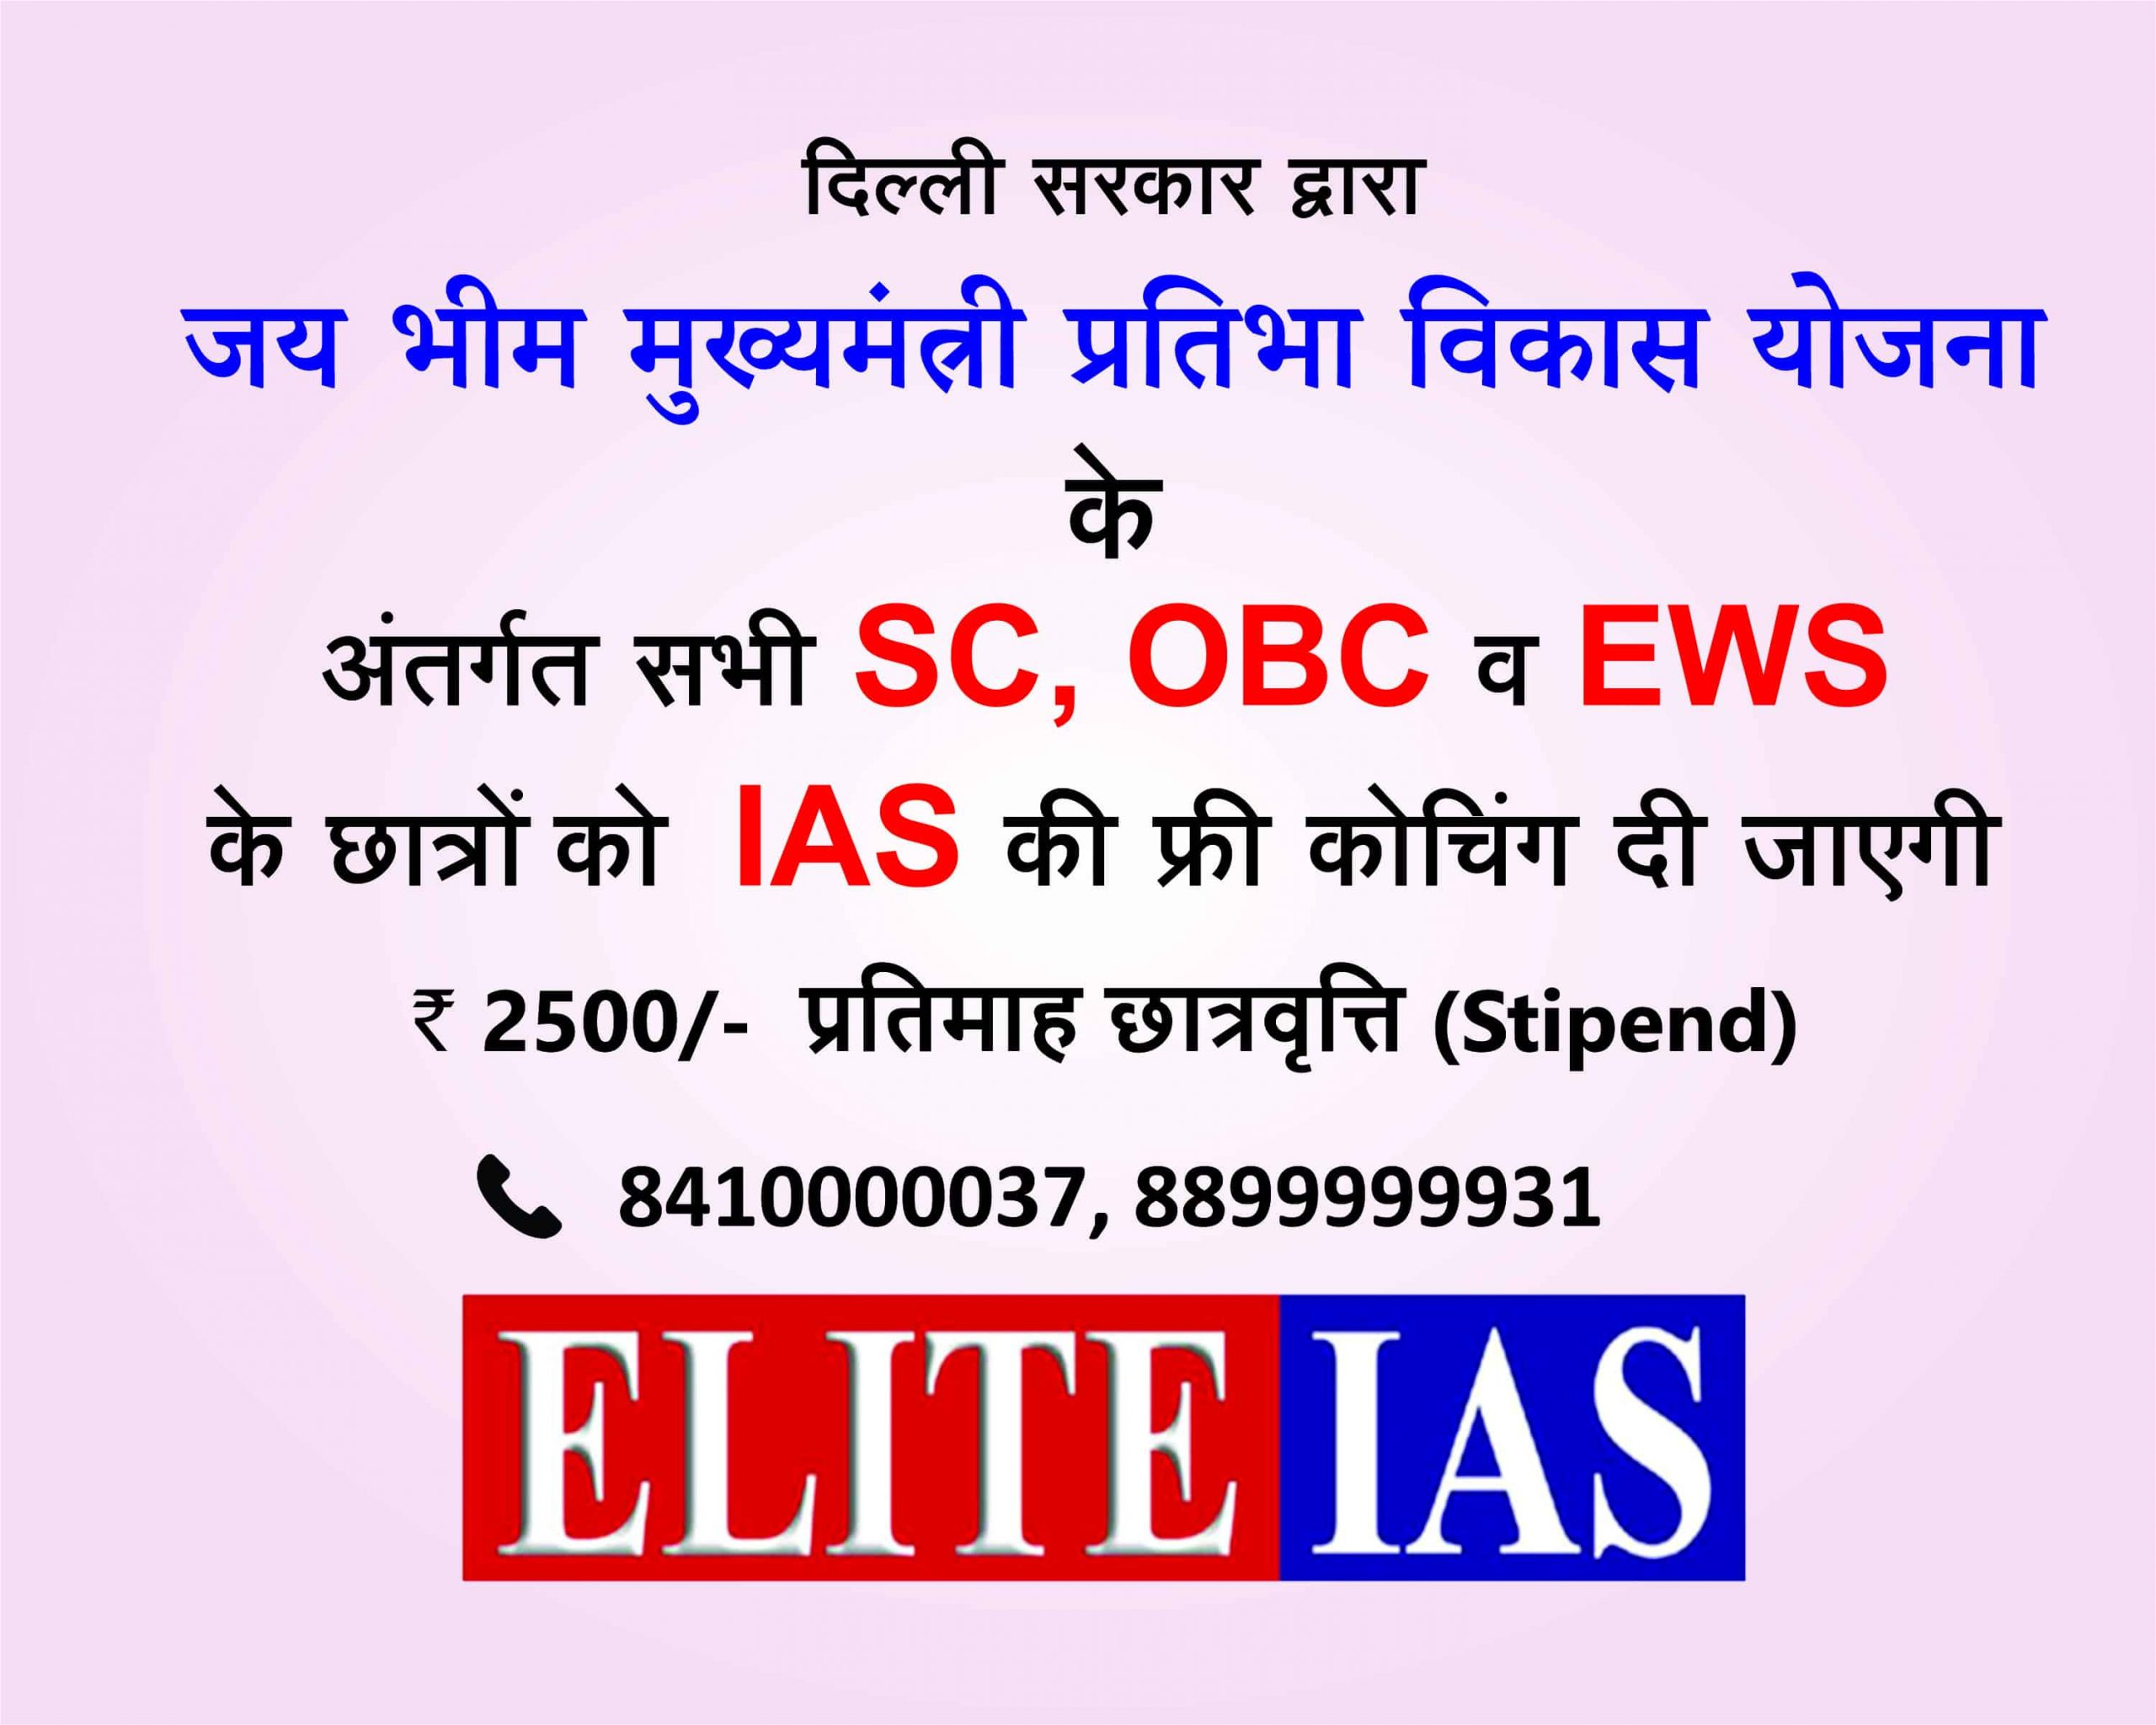 Elite IAS - Jai Bhim- Best IAS Coaching in Delhi